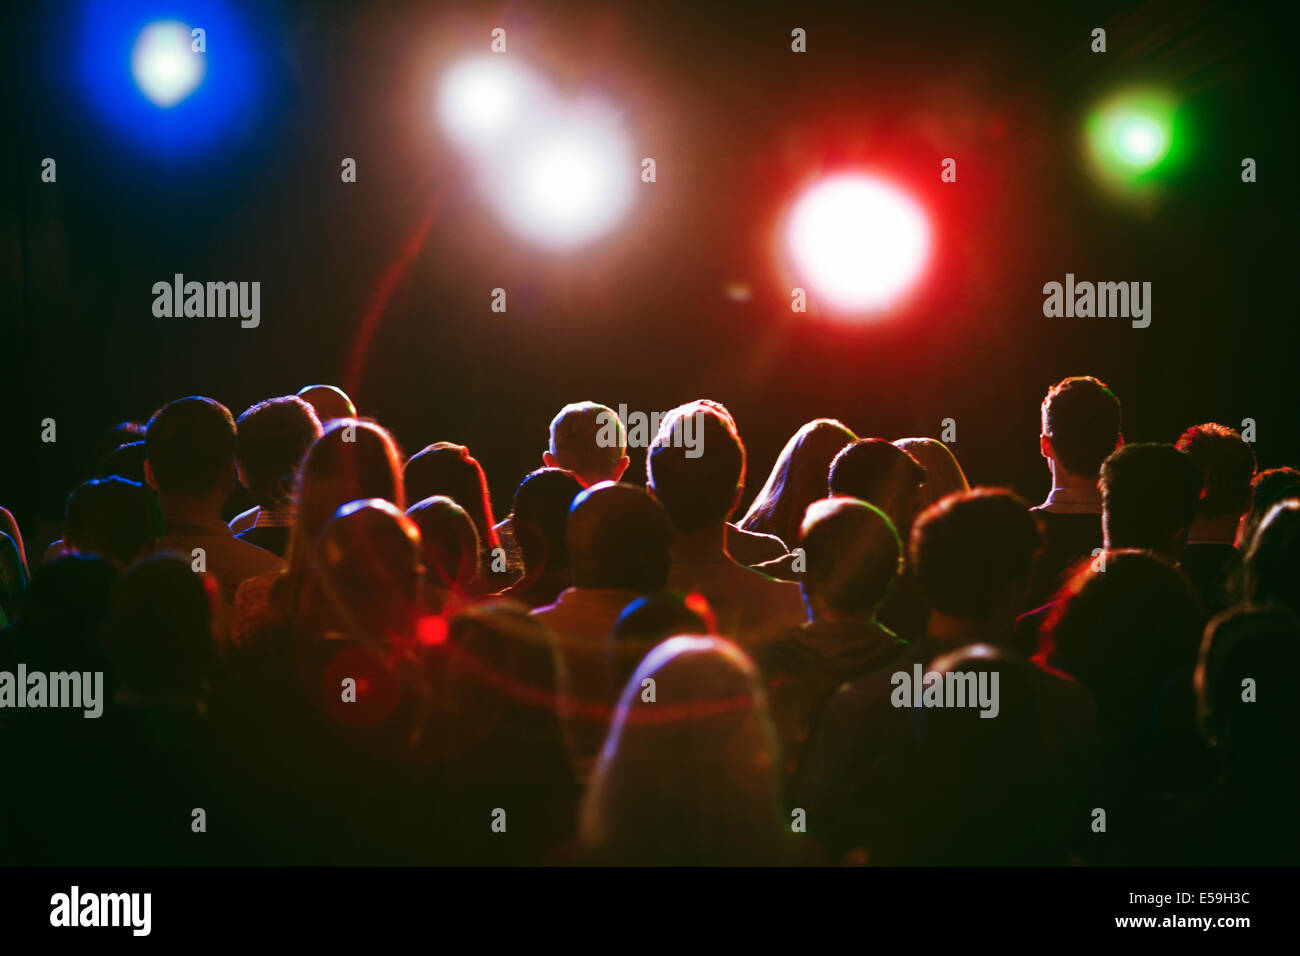 Crowd waiting for concert - Stock Image